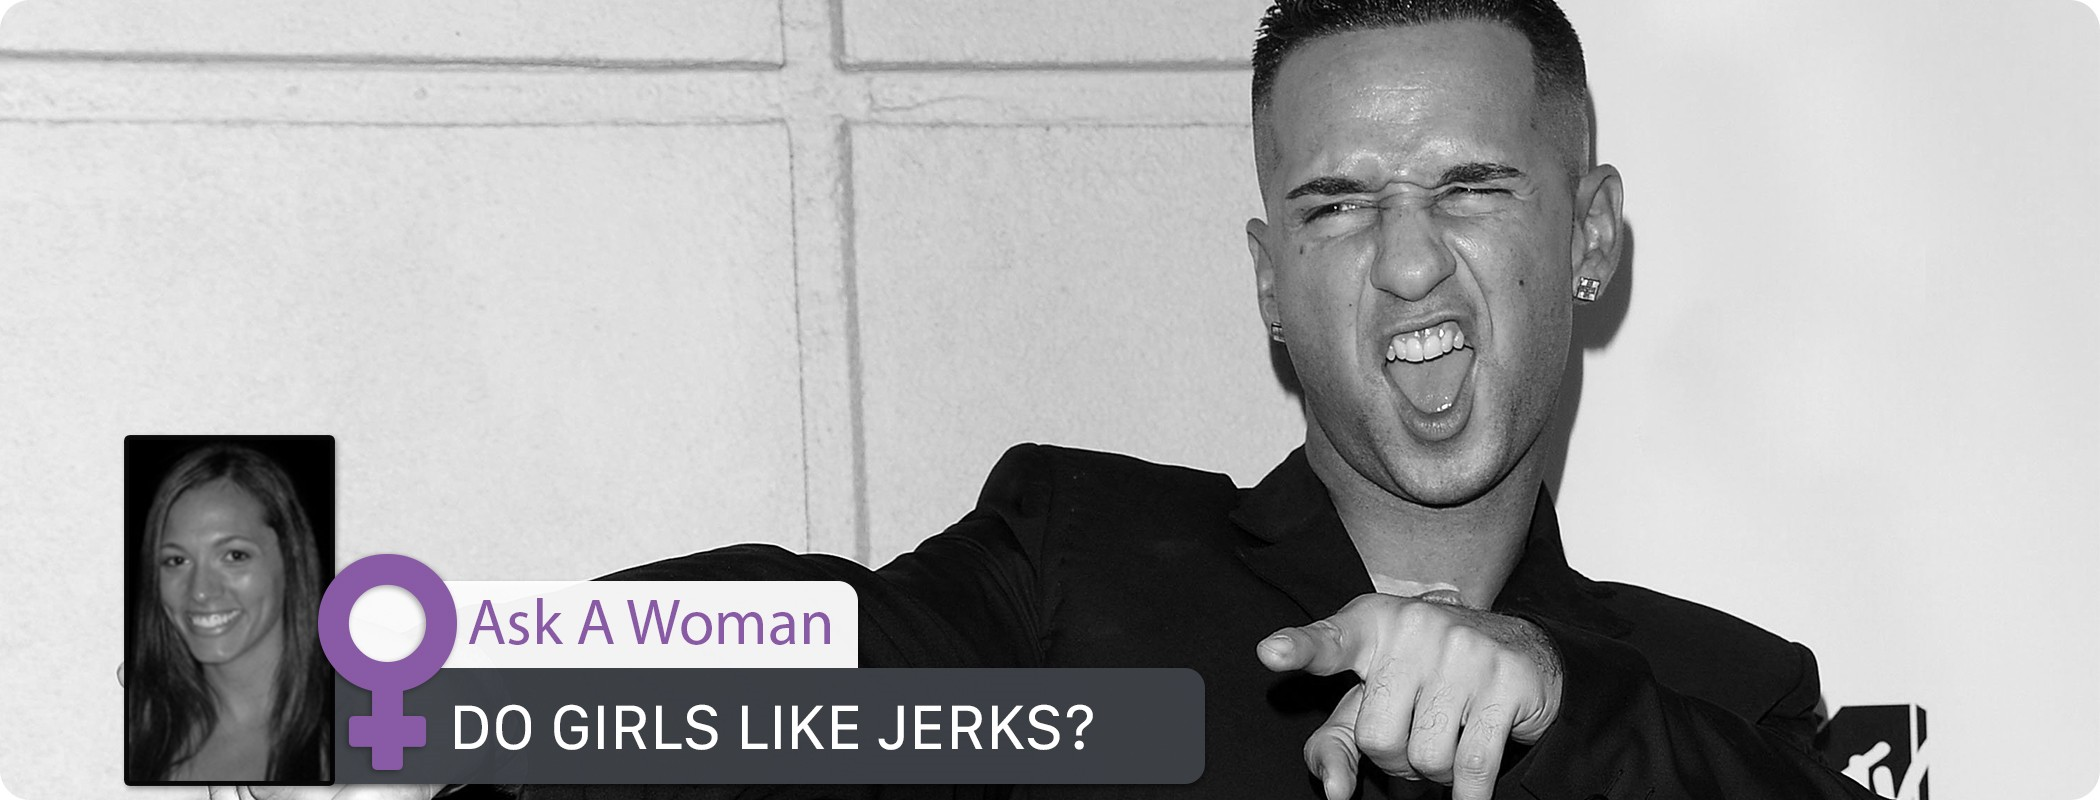 Ask a Woman - Do Girls Like Jerks?